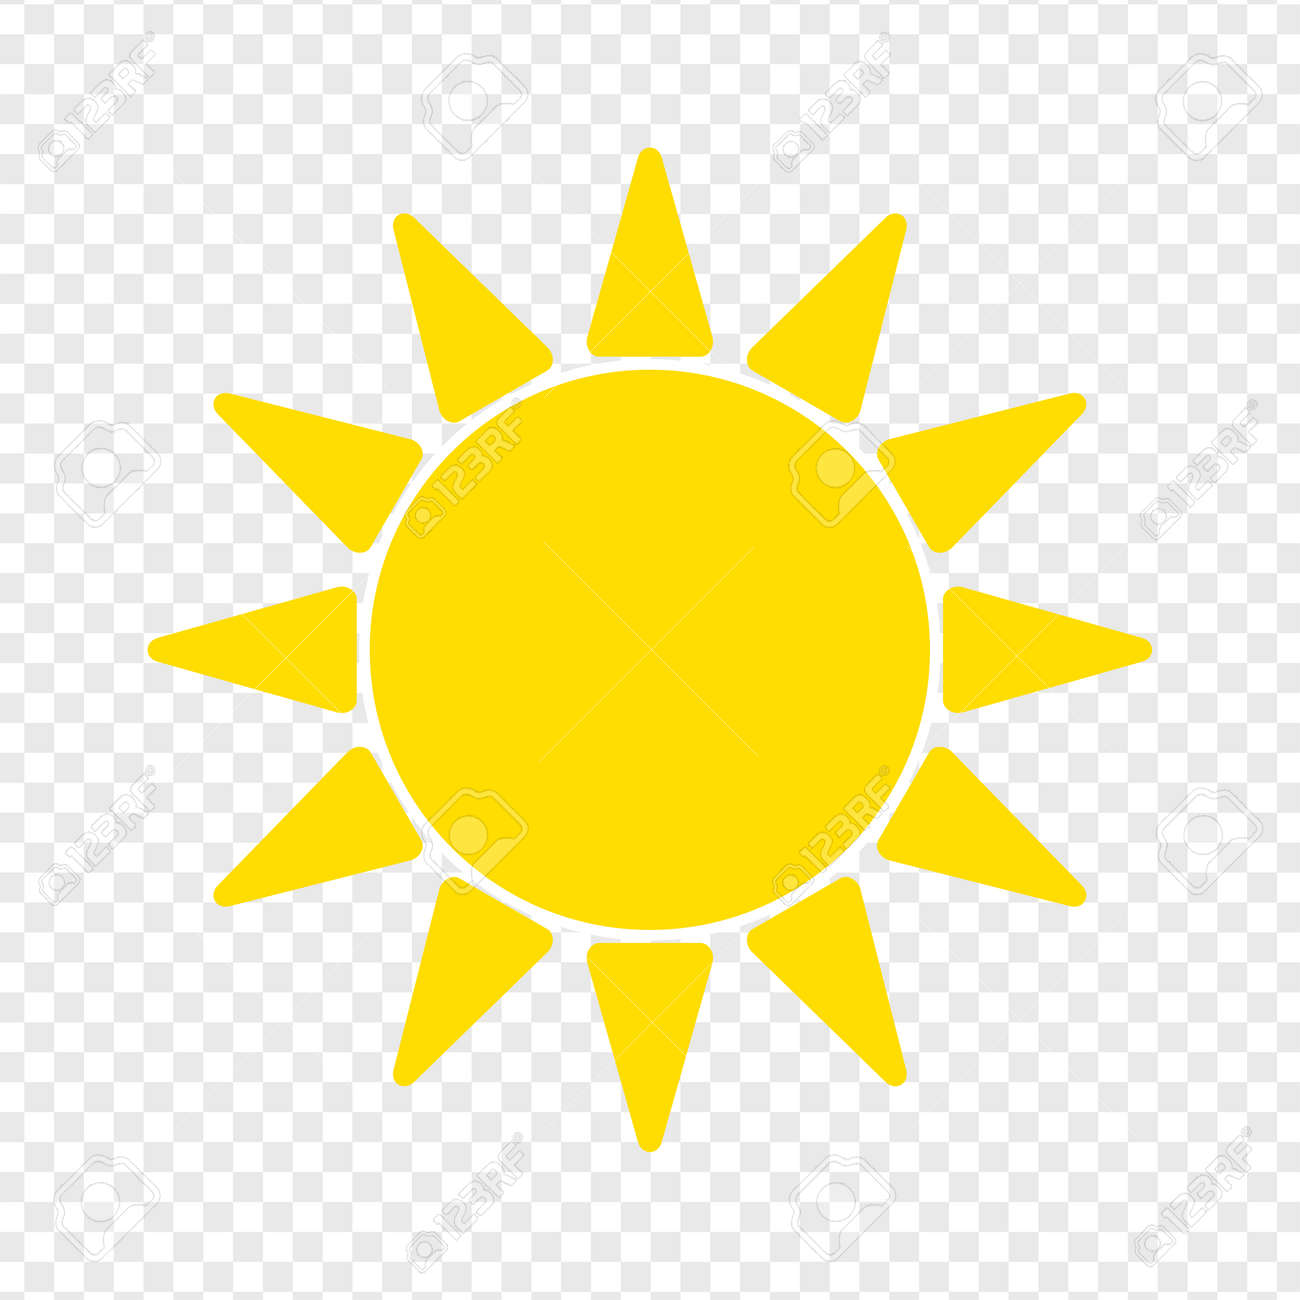 Flat sun Icon  Summer pictogram on transparent background  Sunlight